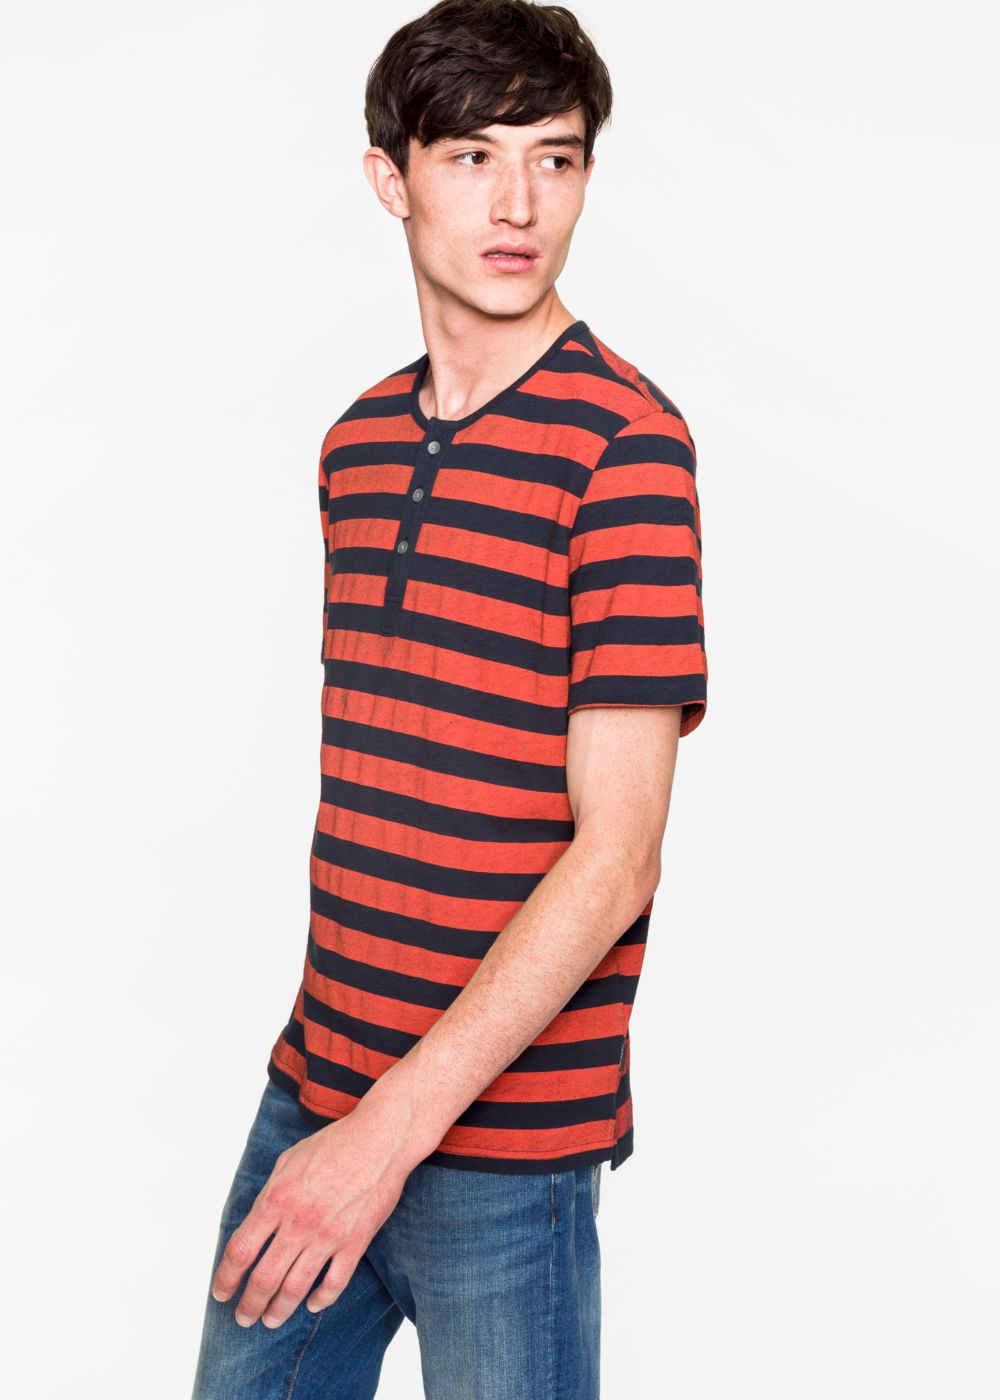 Paul Smith Men's Navy And Red Short-Sleeve Henley Top